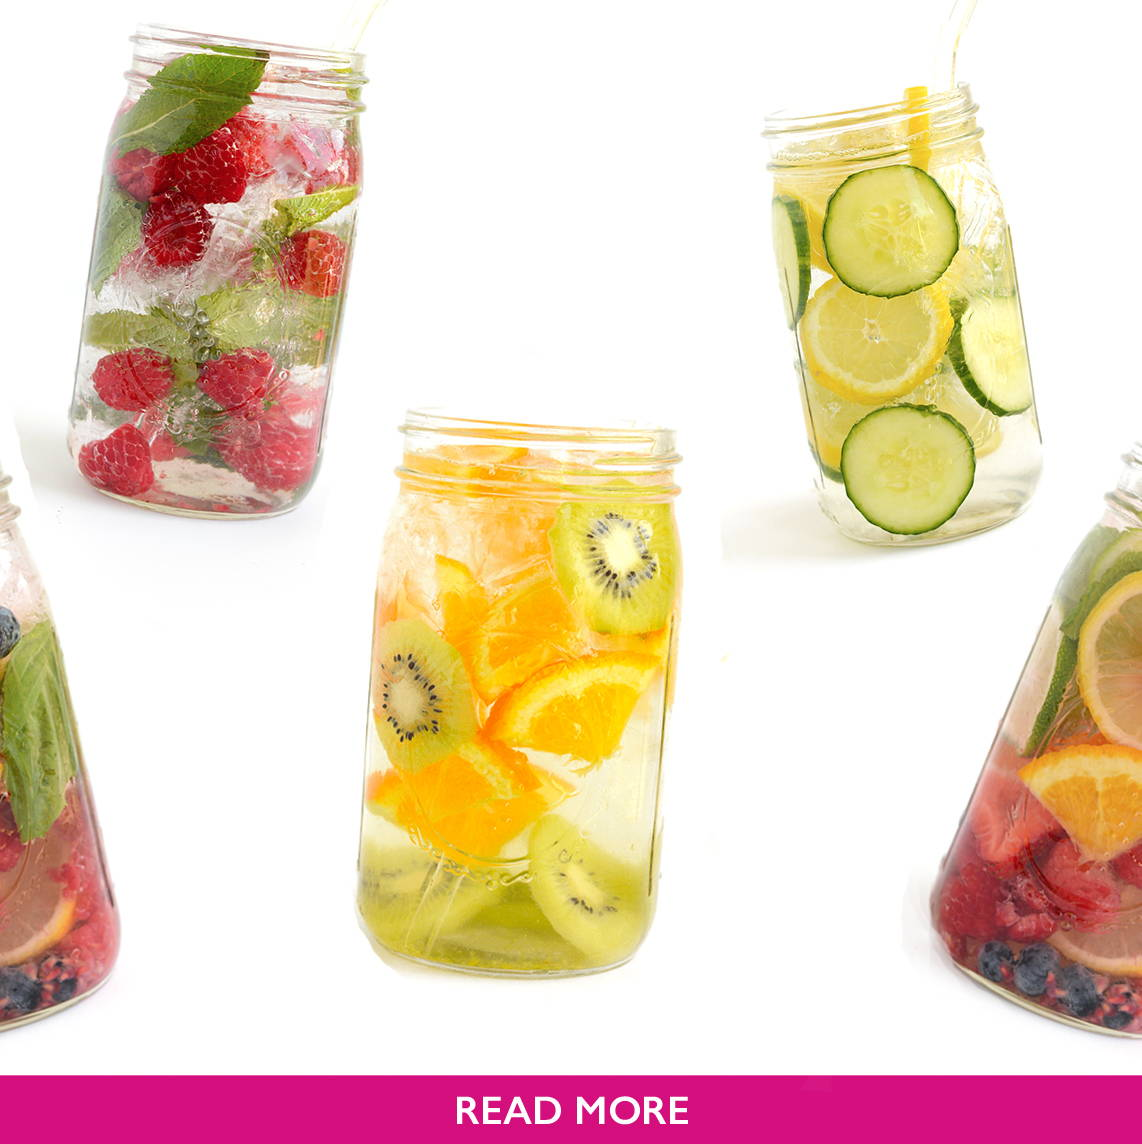 Super easy detox drinks that will enhance your skin. Read more